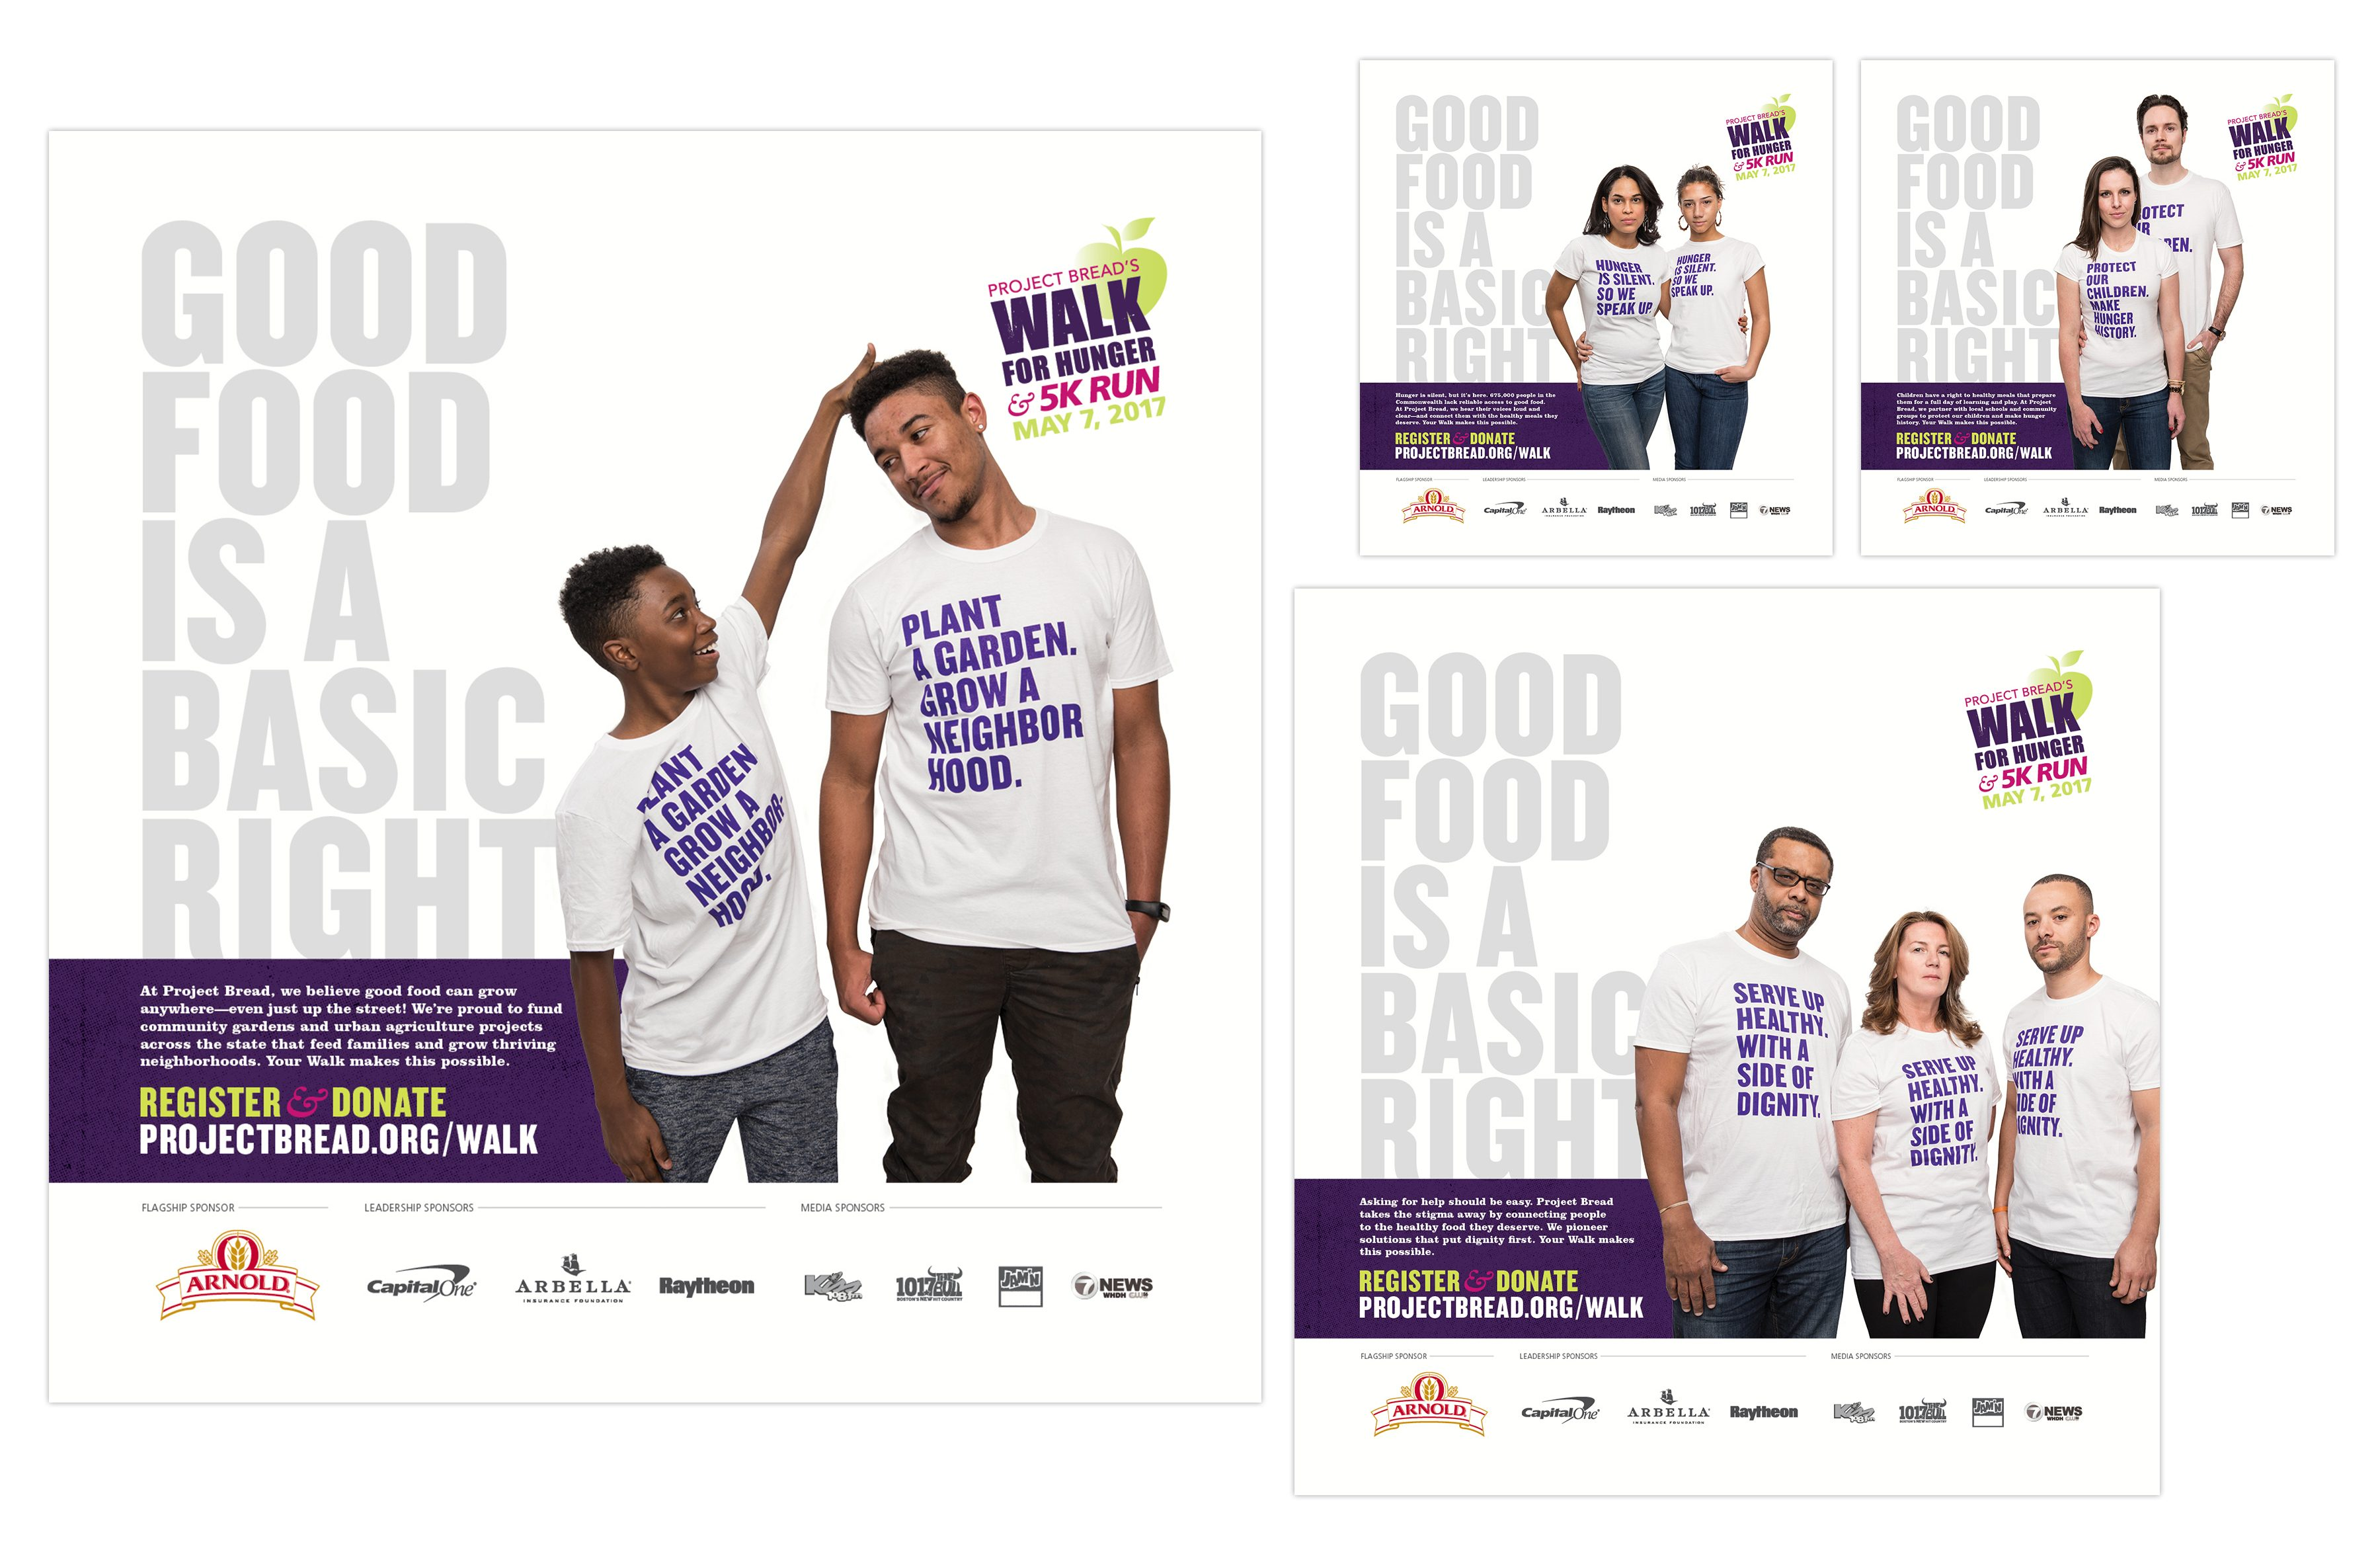 Project Bread Walk for Hunger 2017 advertisements: good food is a basic right